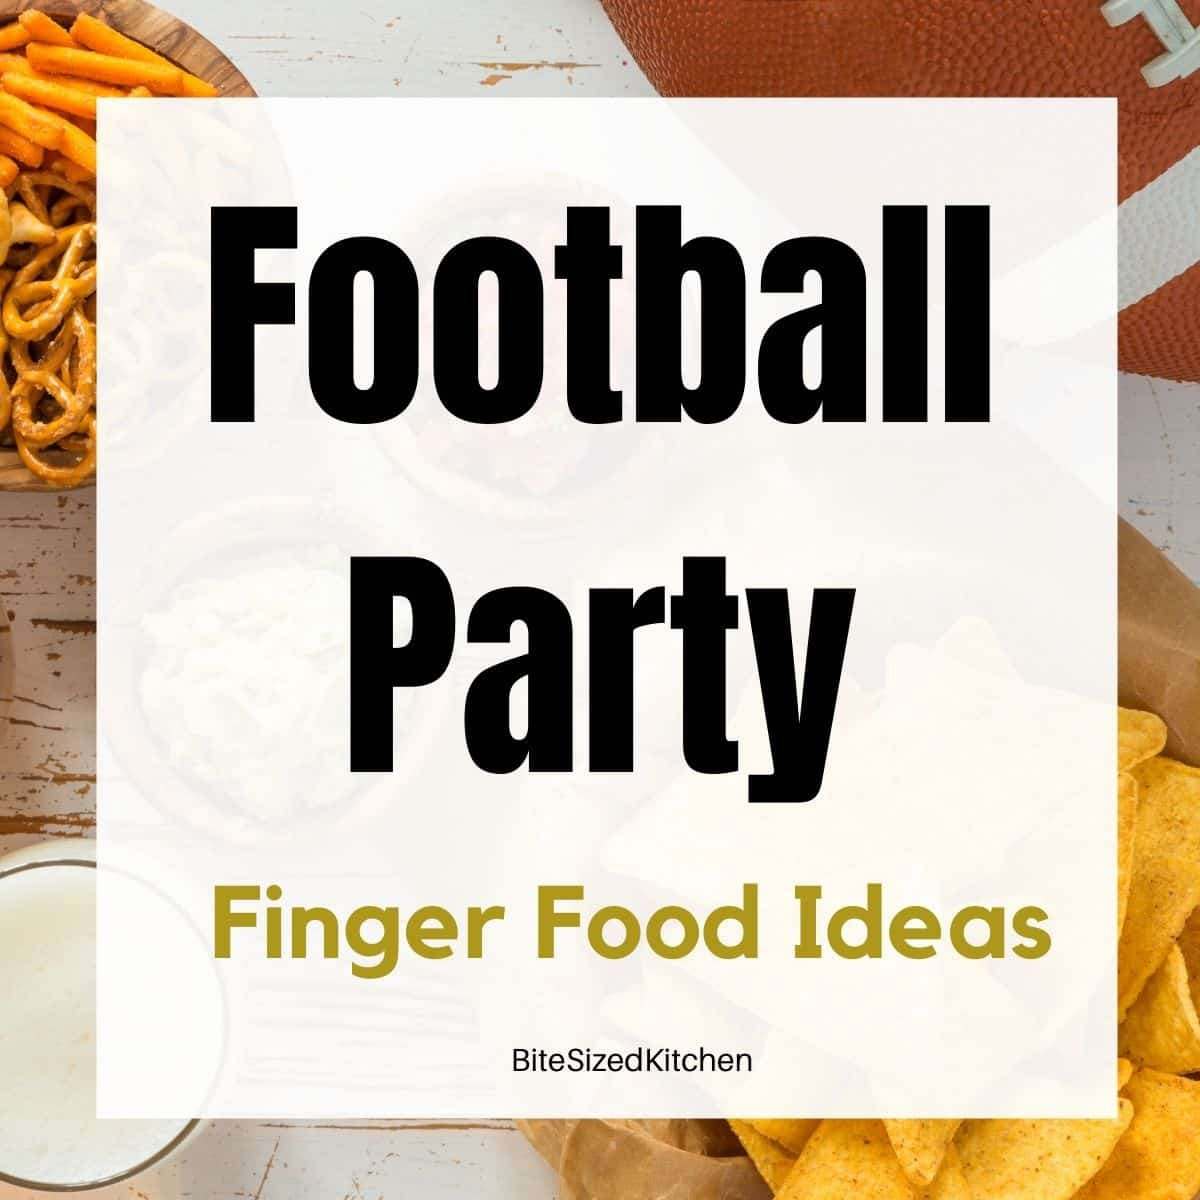 football party finger food ideas perfect for Super Bowl or tailgating.